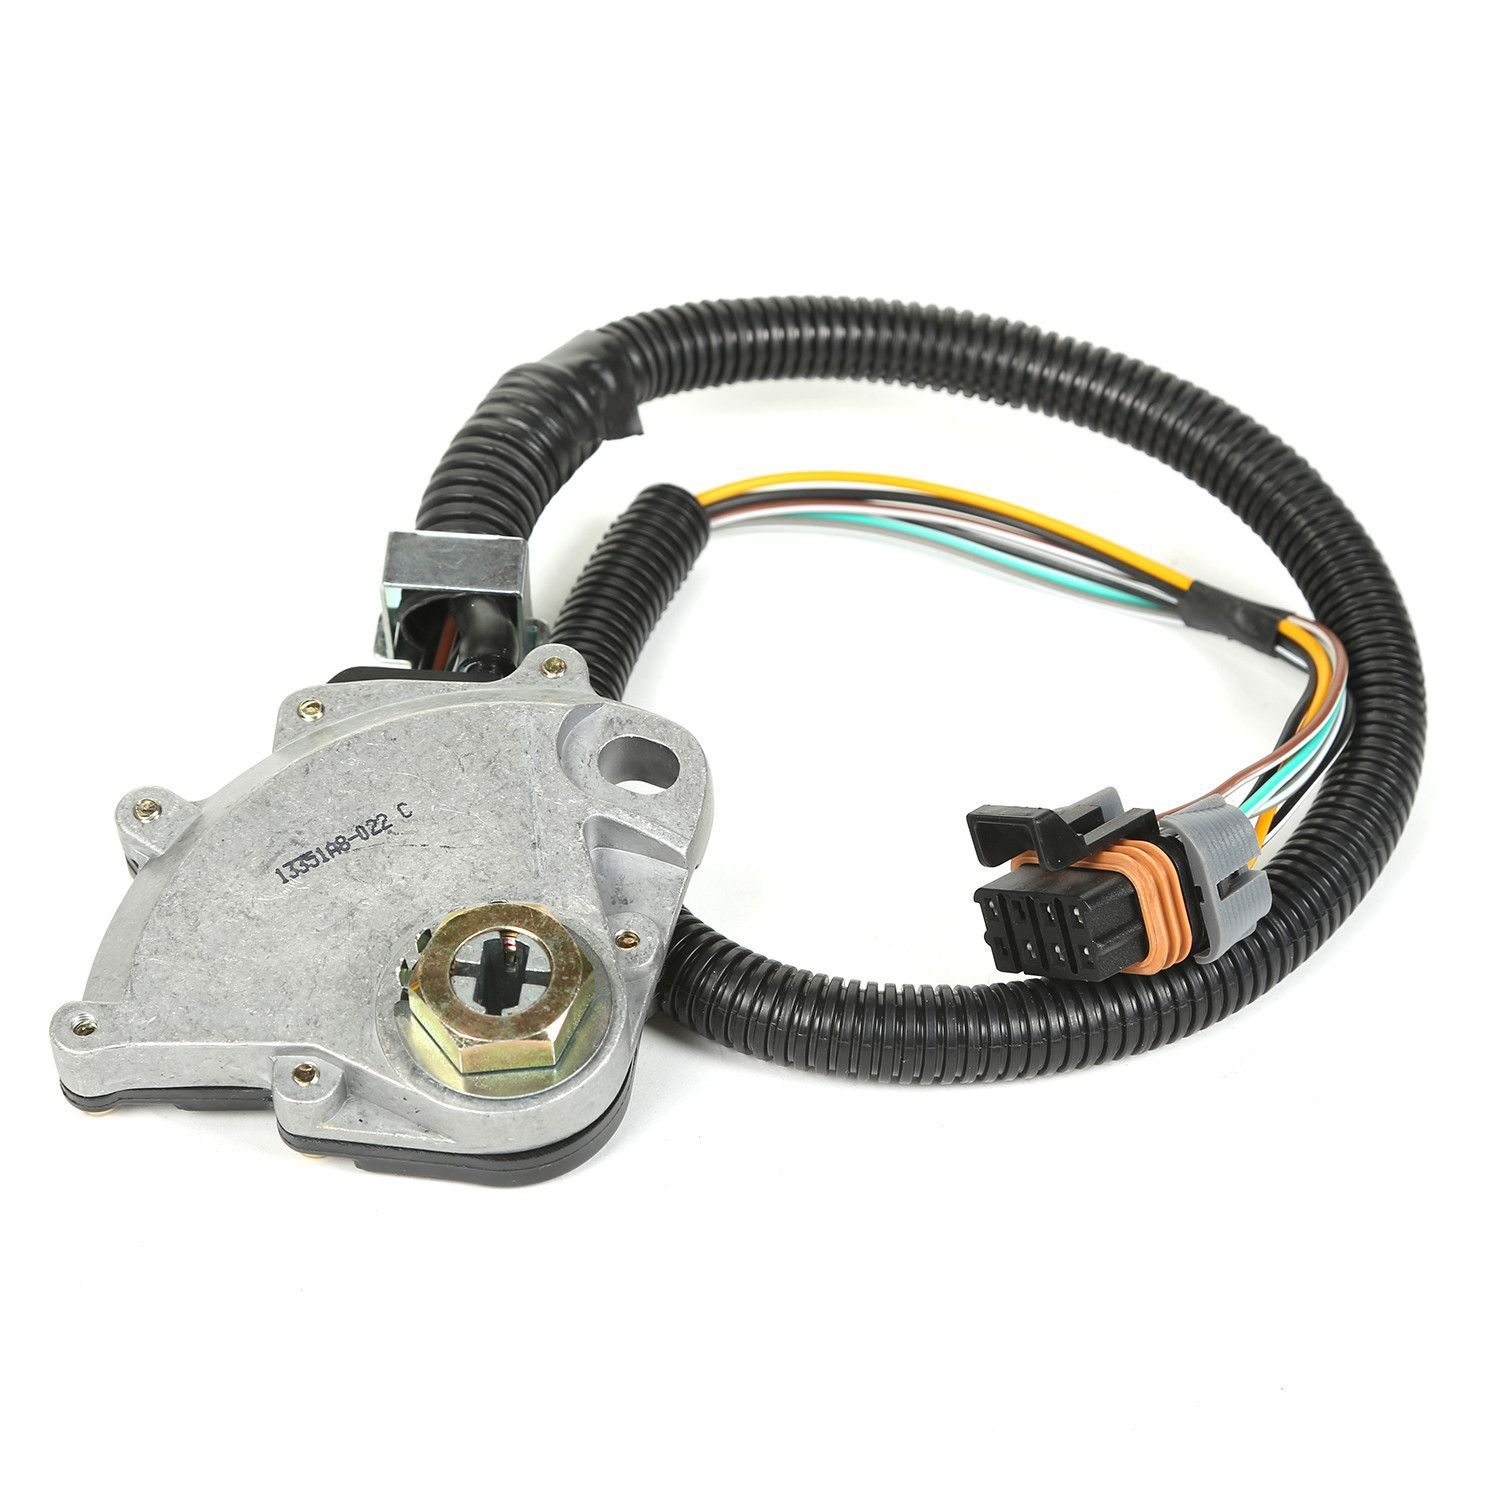 Neutral Safety Switch, AW4; 8796 Jeep Cherokee/93 Grand